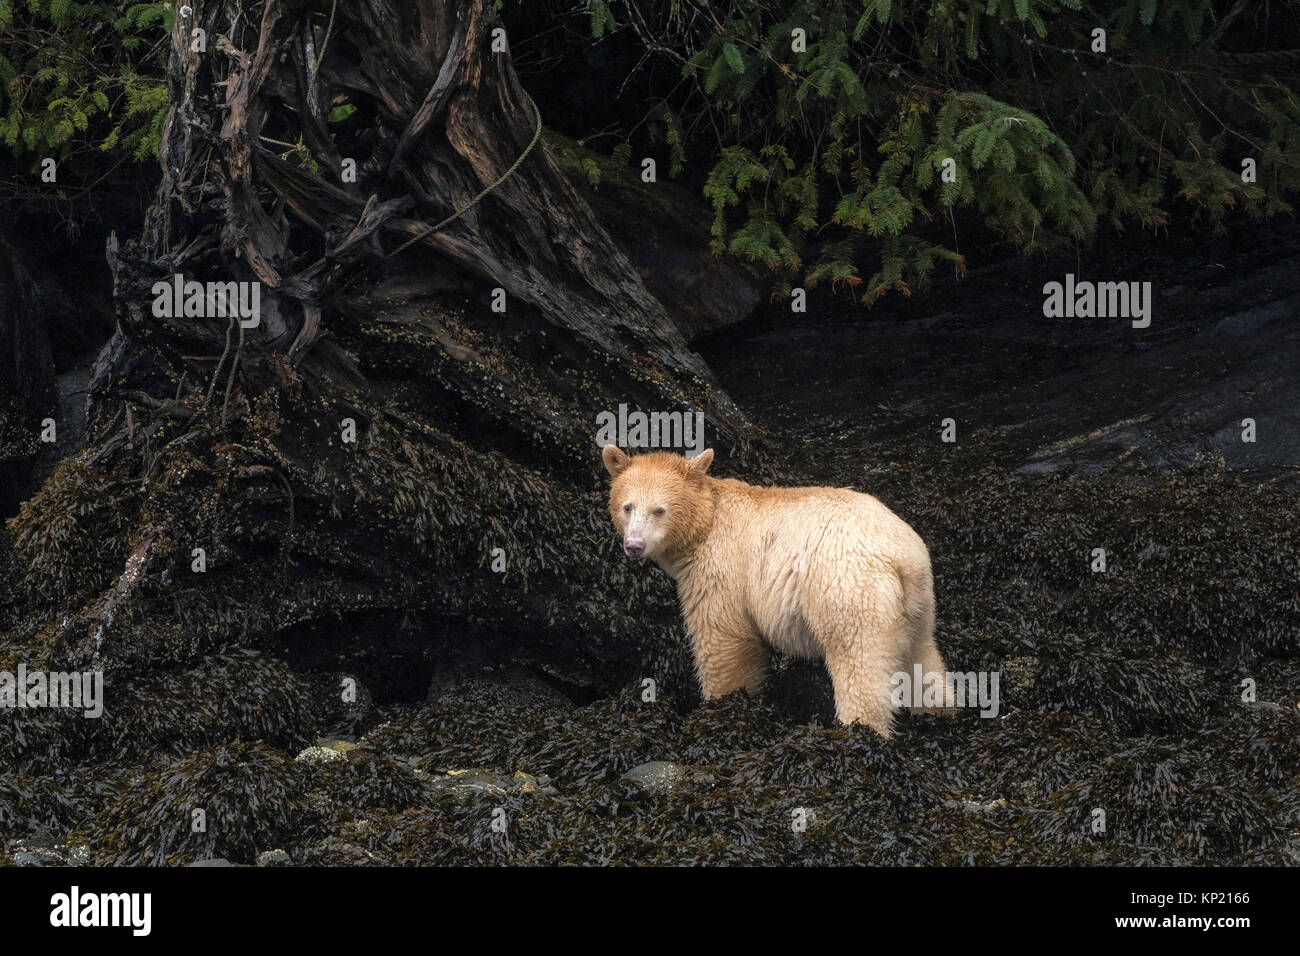 One Kermode Spirit Bear In The Great Rainforest British Columbia Canada